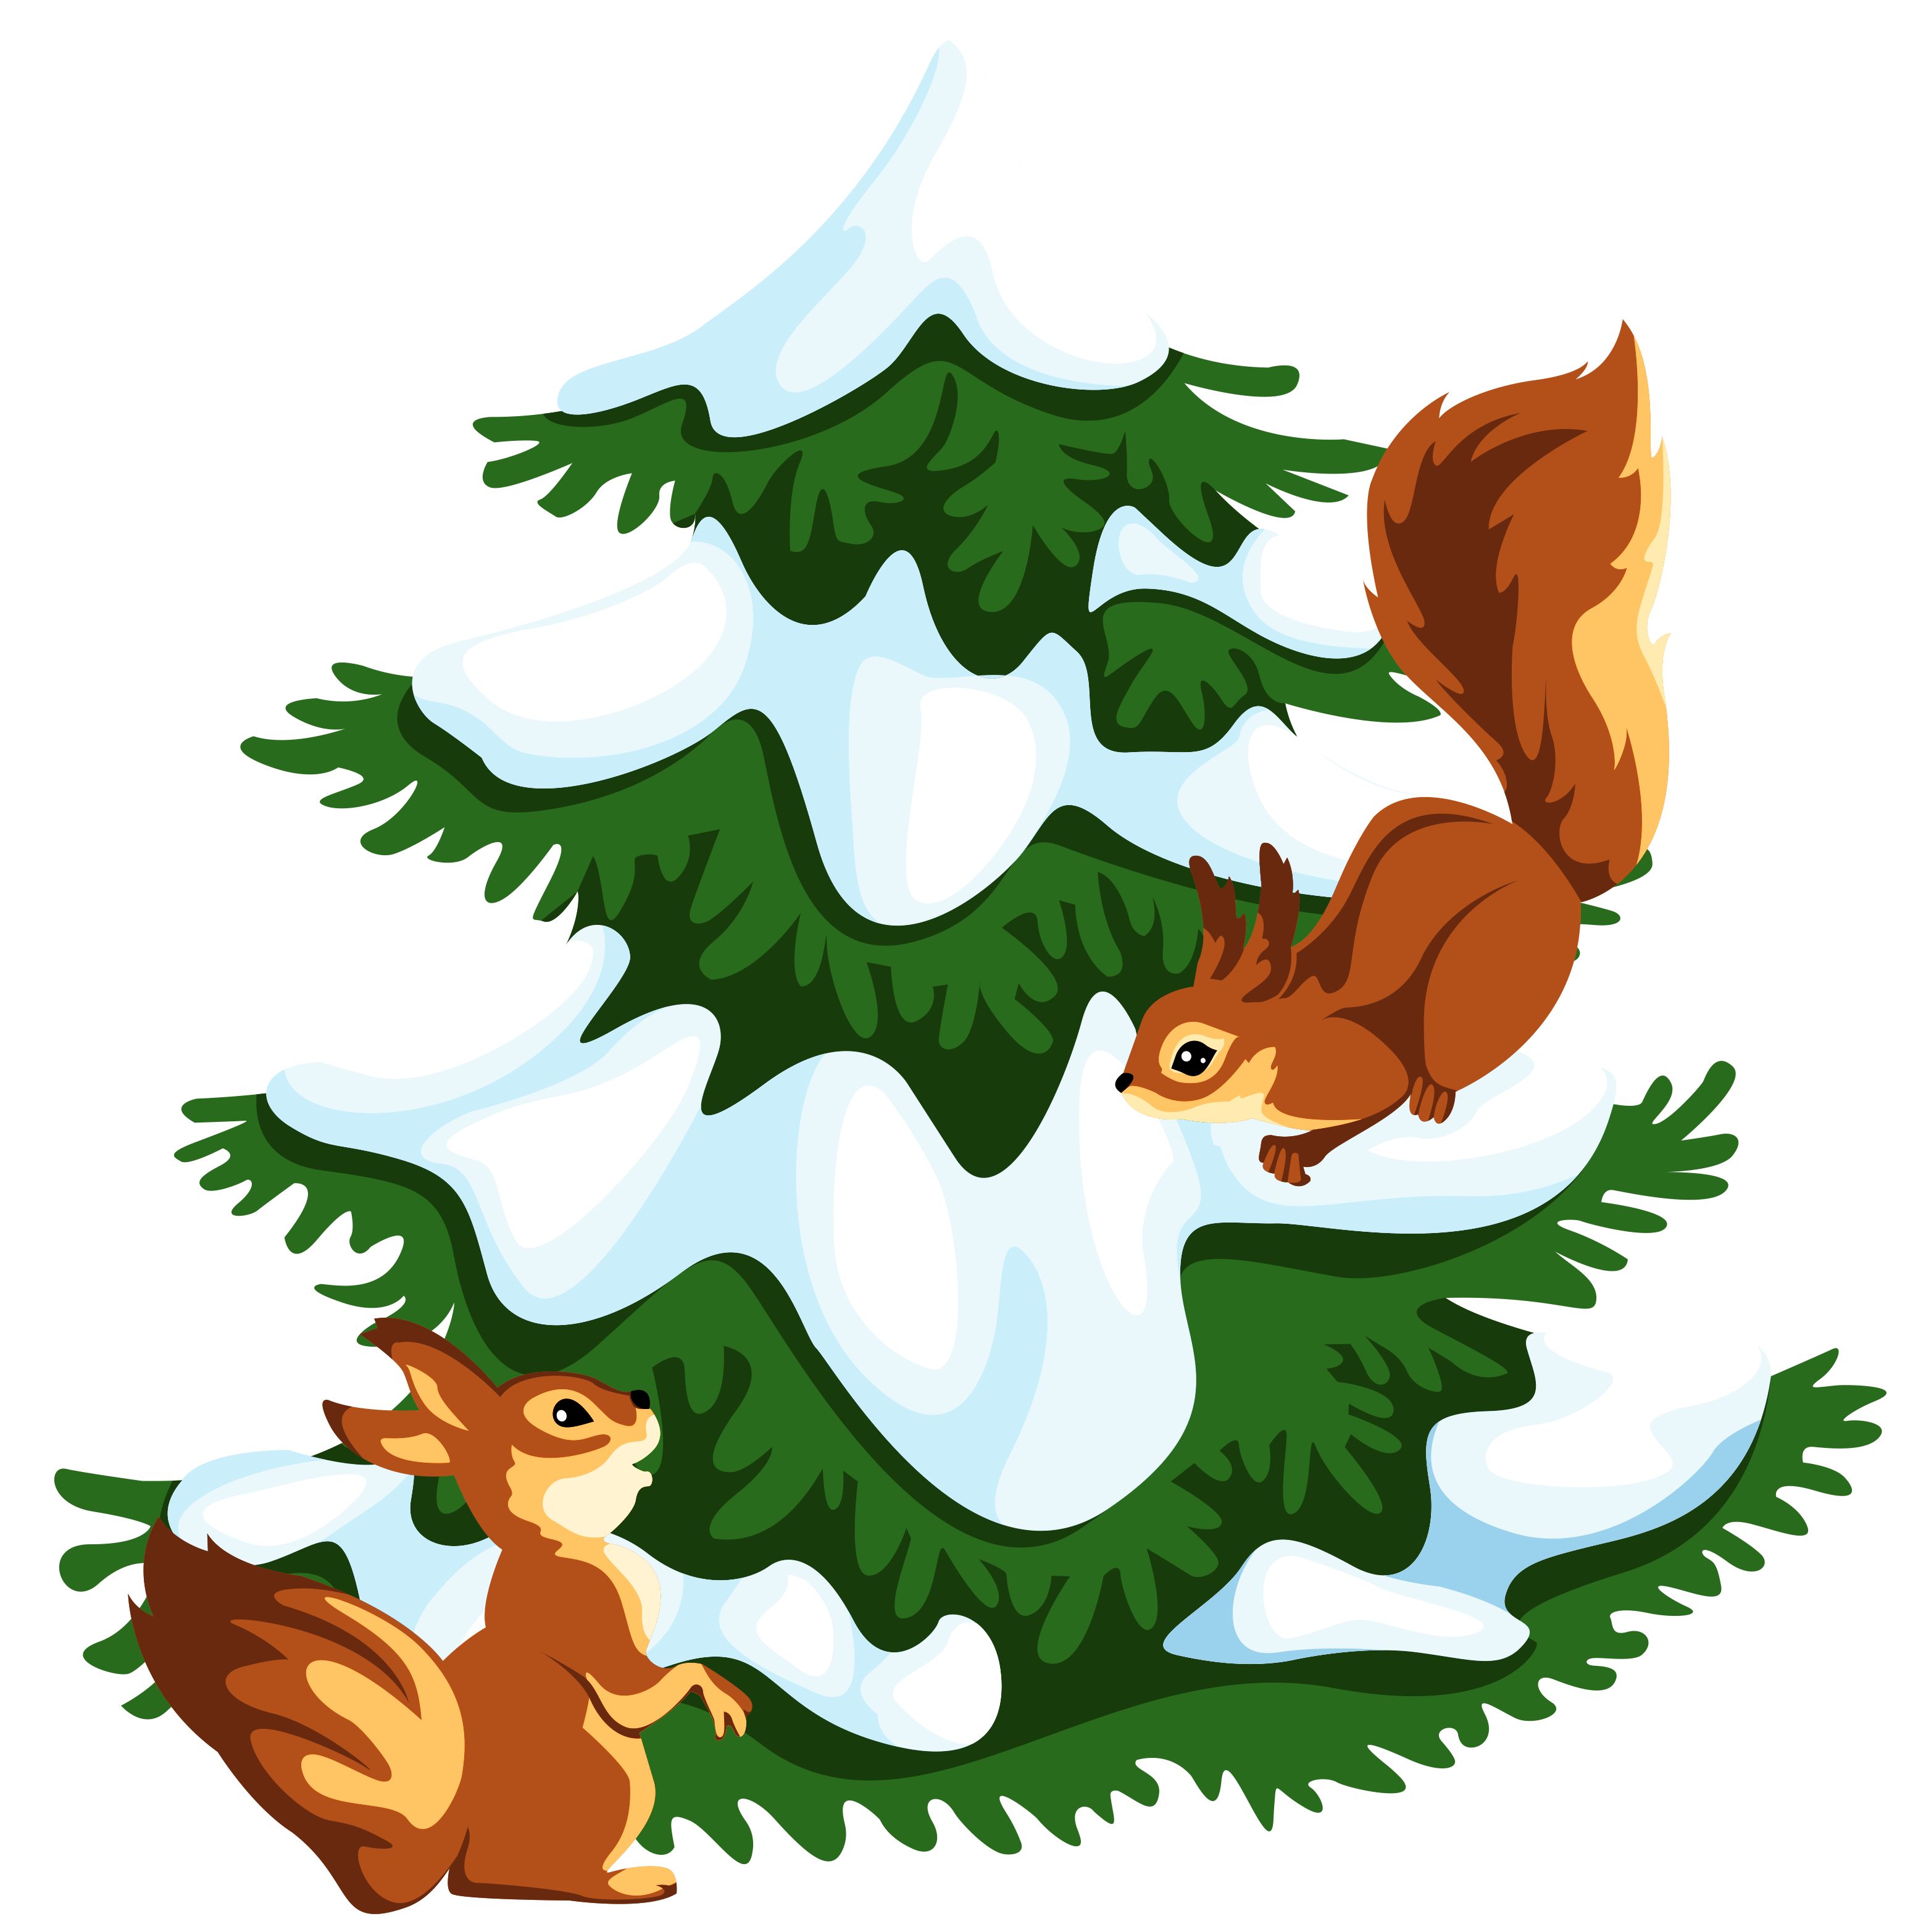 Squirrel clipart winter. Transparent snowy tree with